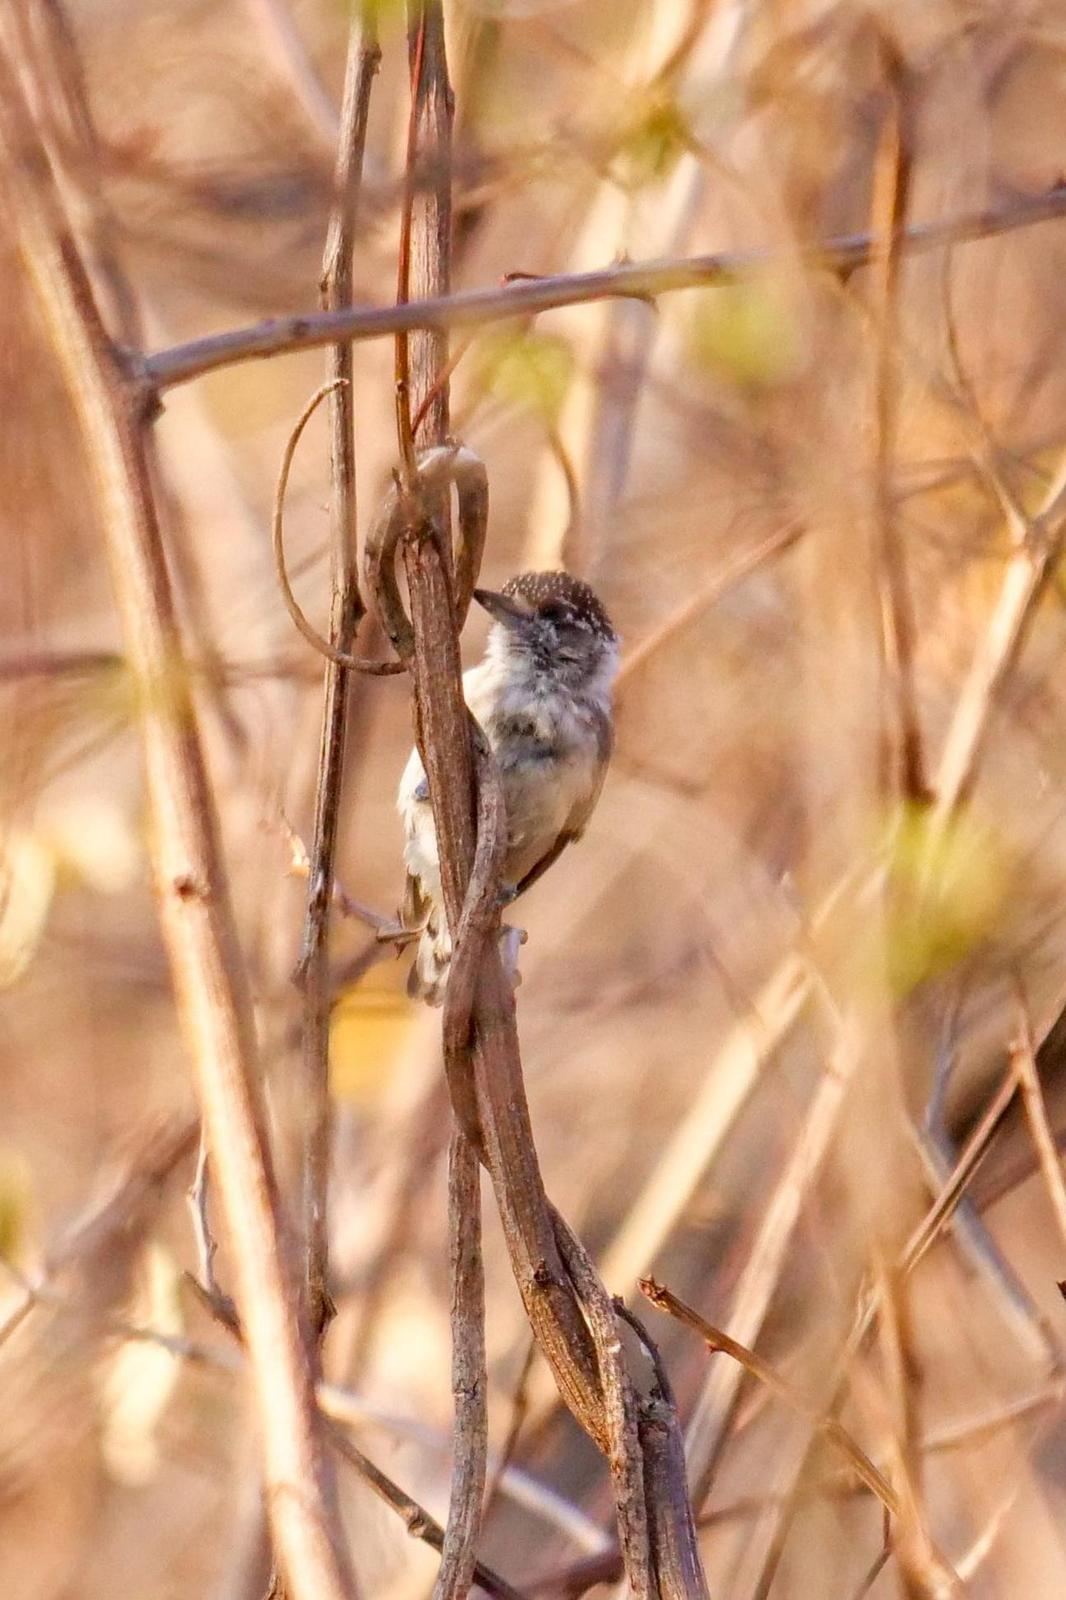 Ochraceous Piculet Photo by Roger Horn